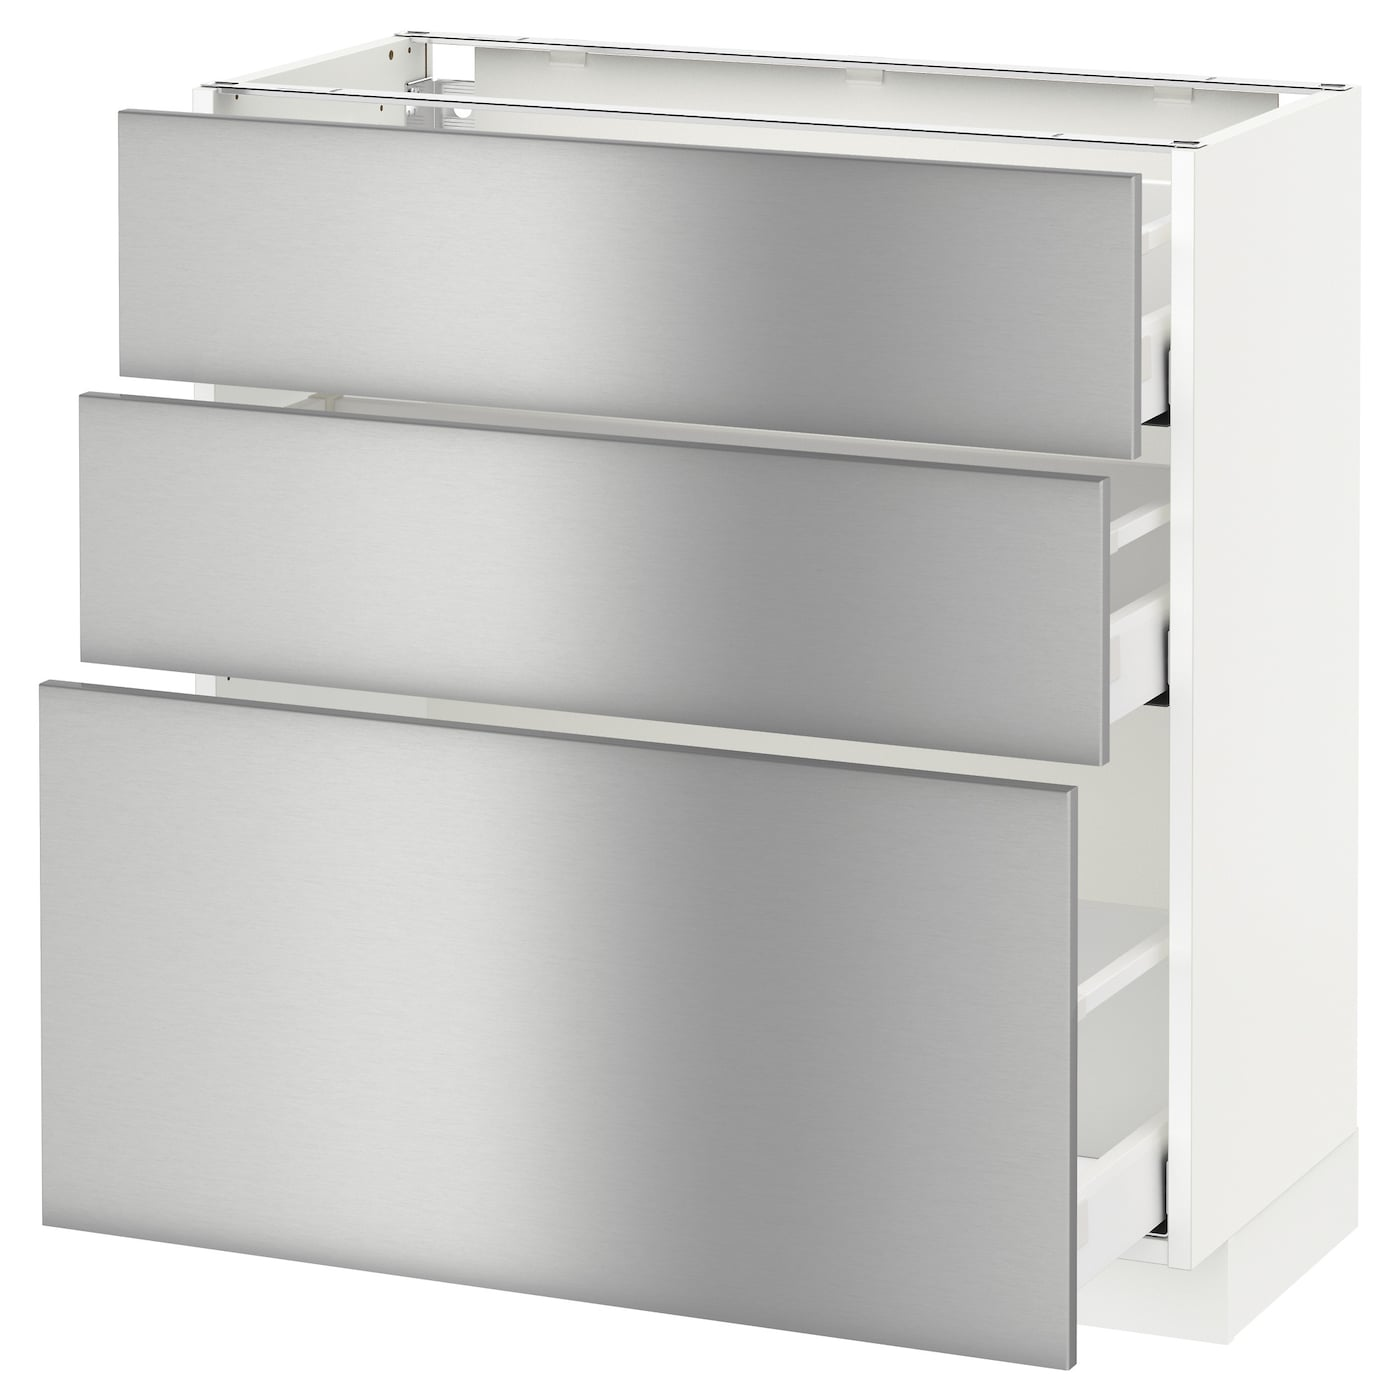 Metod maximera base cabinet with 3 drawers white grevsta for Steel kitchen cabinets